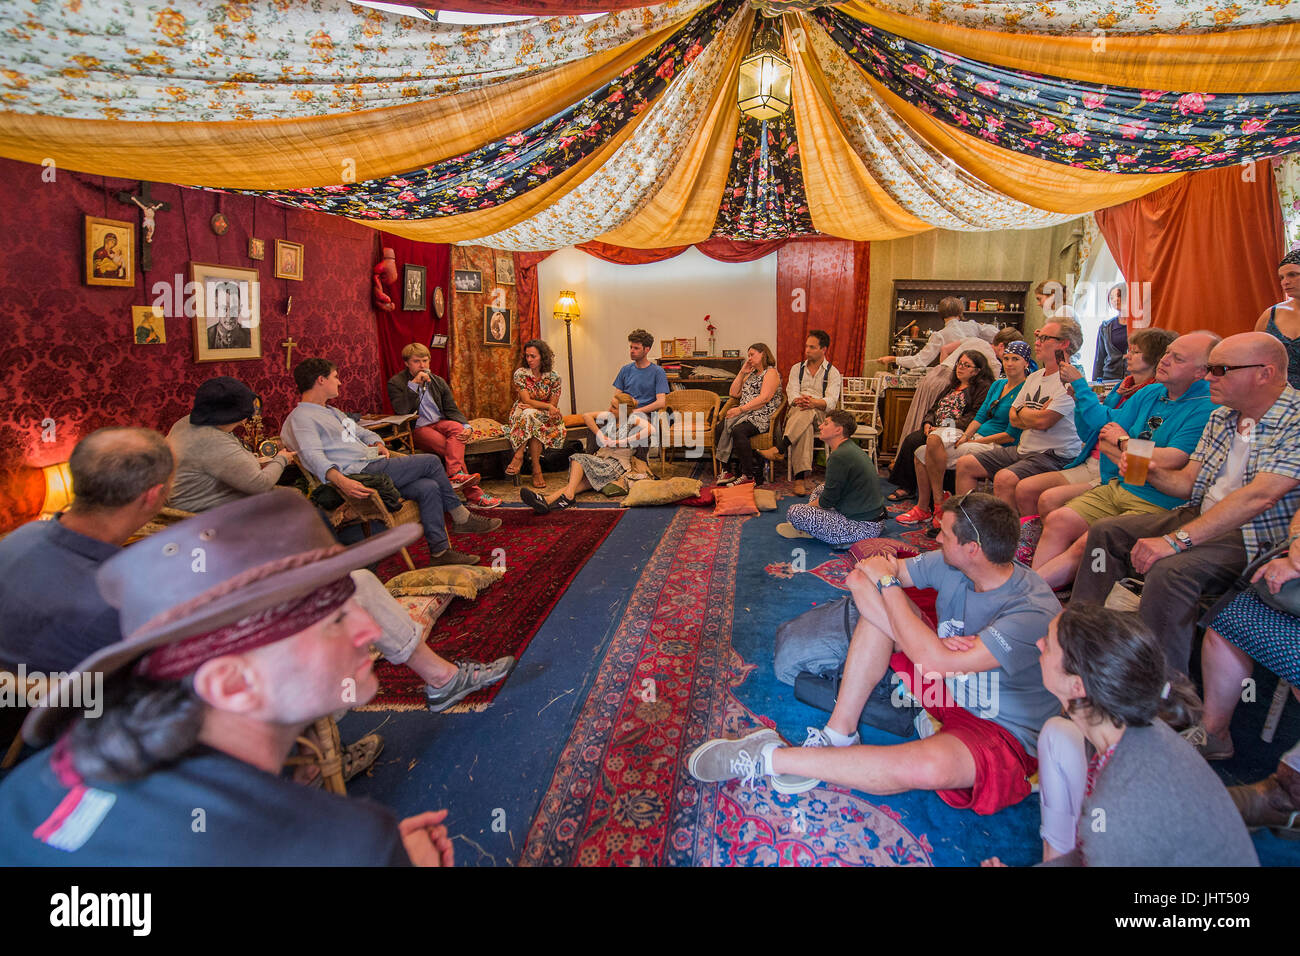 Discussion of Russia today by dissident Vladimir Ahurkov in the Dacha in teh Faraway Forest - The 2017 Latitude - Stock Image